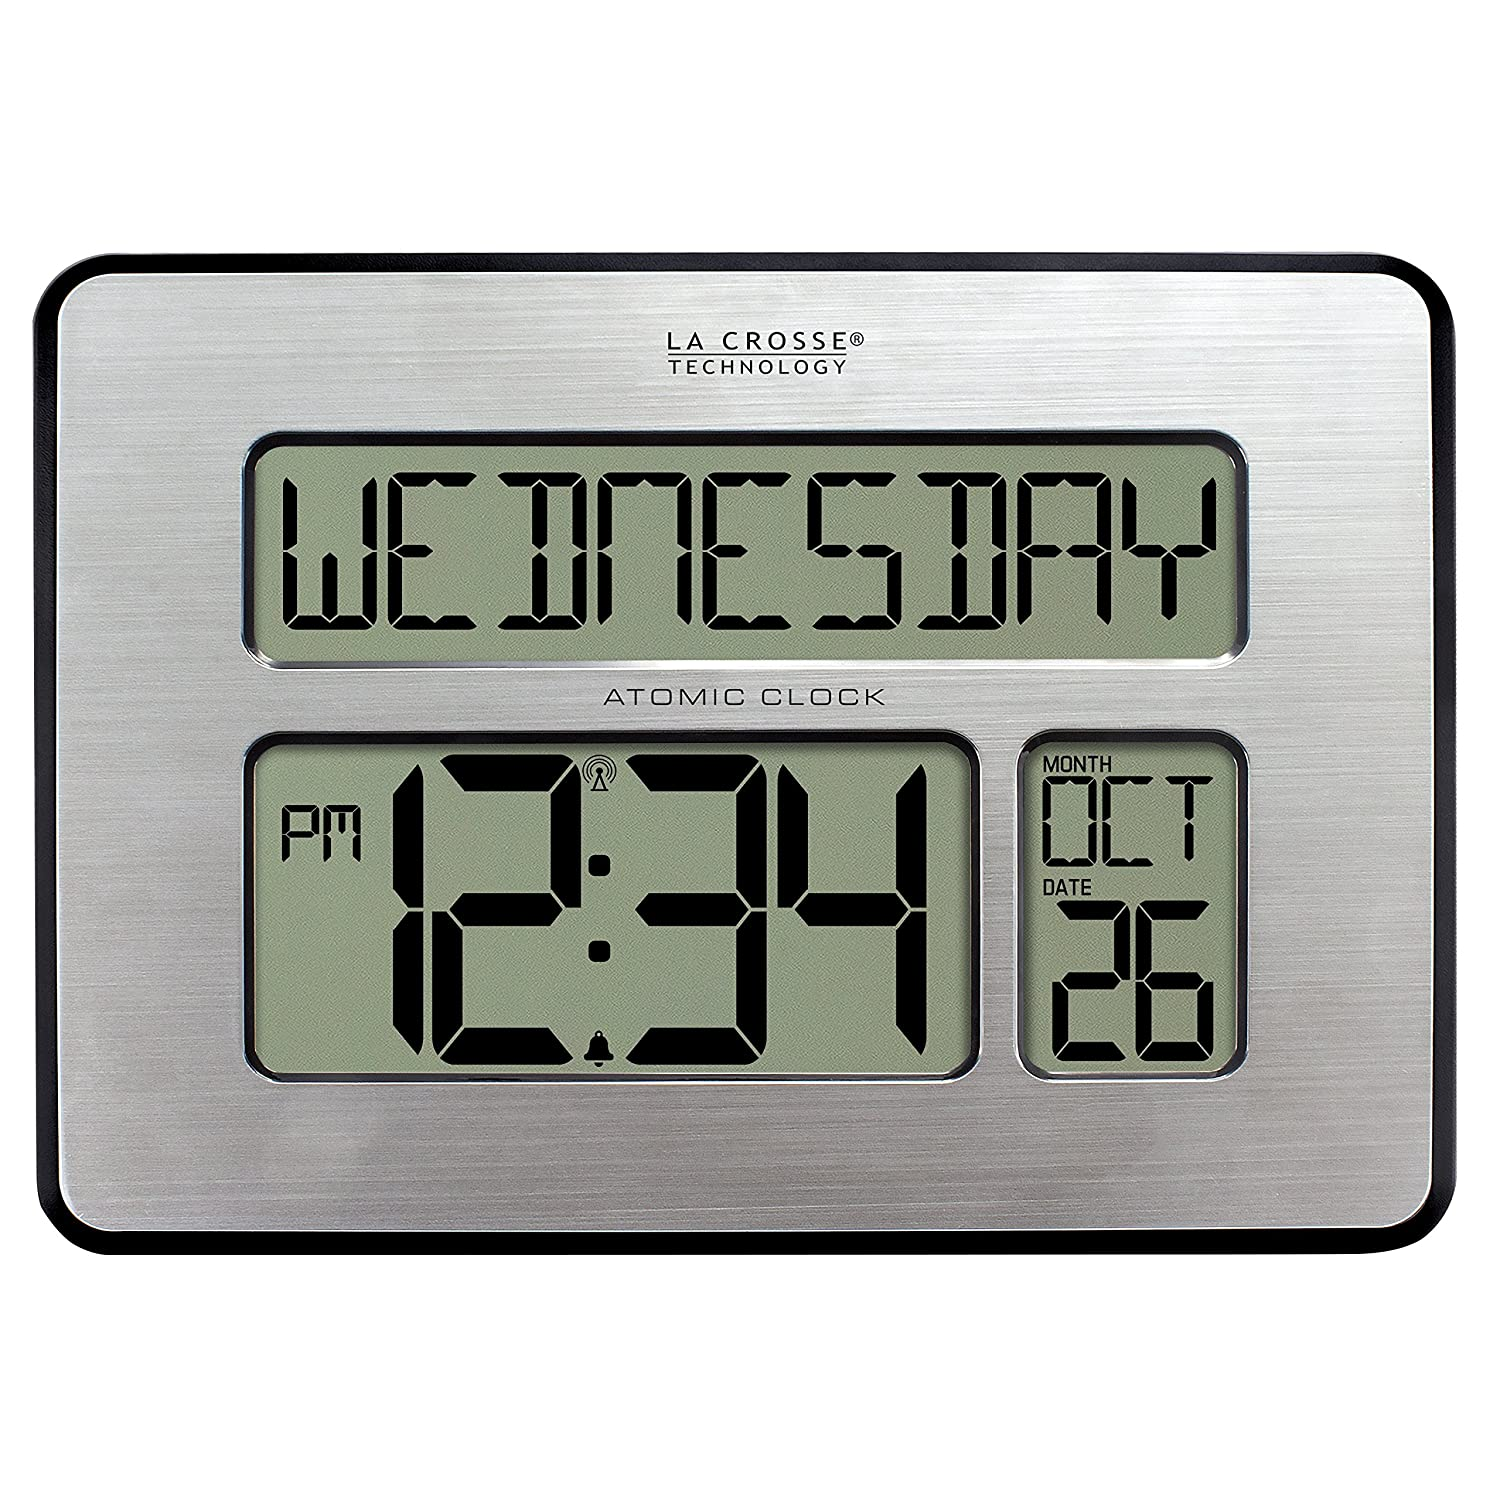 Amazon la crosse technology 513 1419bl int backlight atomic amazon la crosse technology 513 1419bl int backlight atomic full calendar clock with extra large digits perfect gift for the elderly home kitchen amipublicfo Gallery